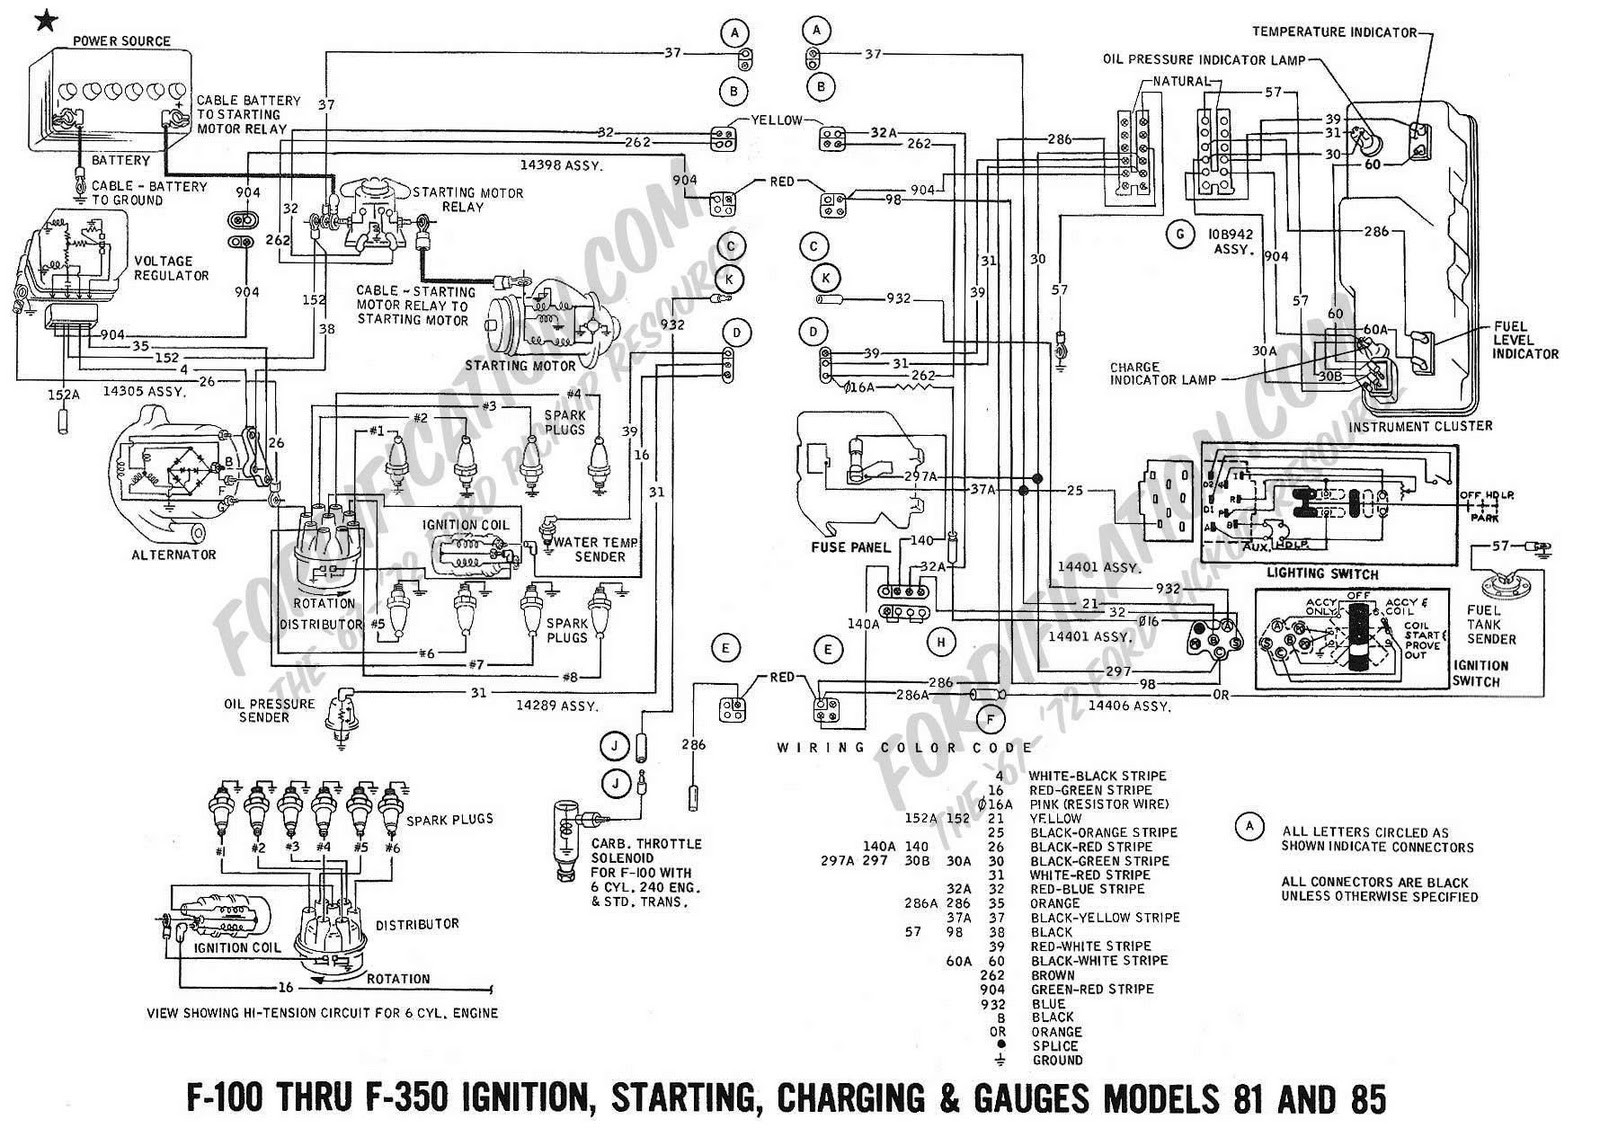 1969 Ford F100 F350 Ignition Starting Charging And Gauges Wiring Diagram